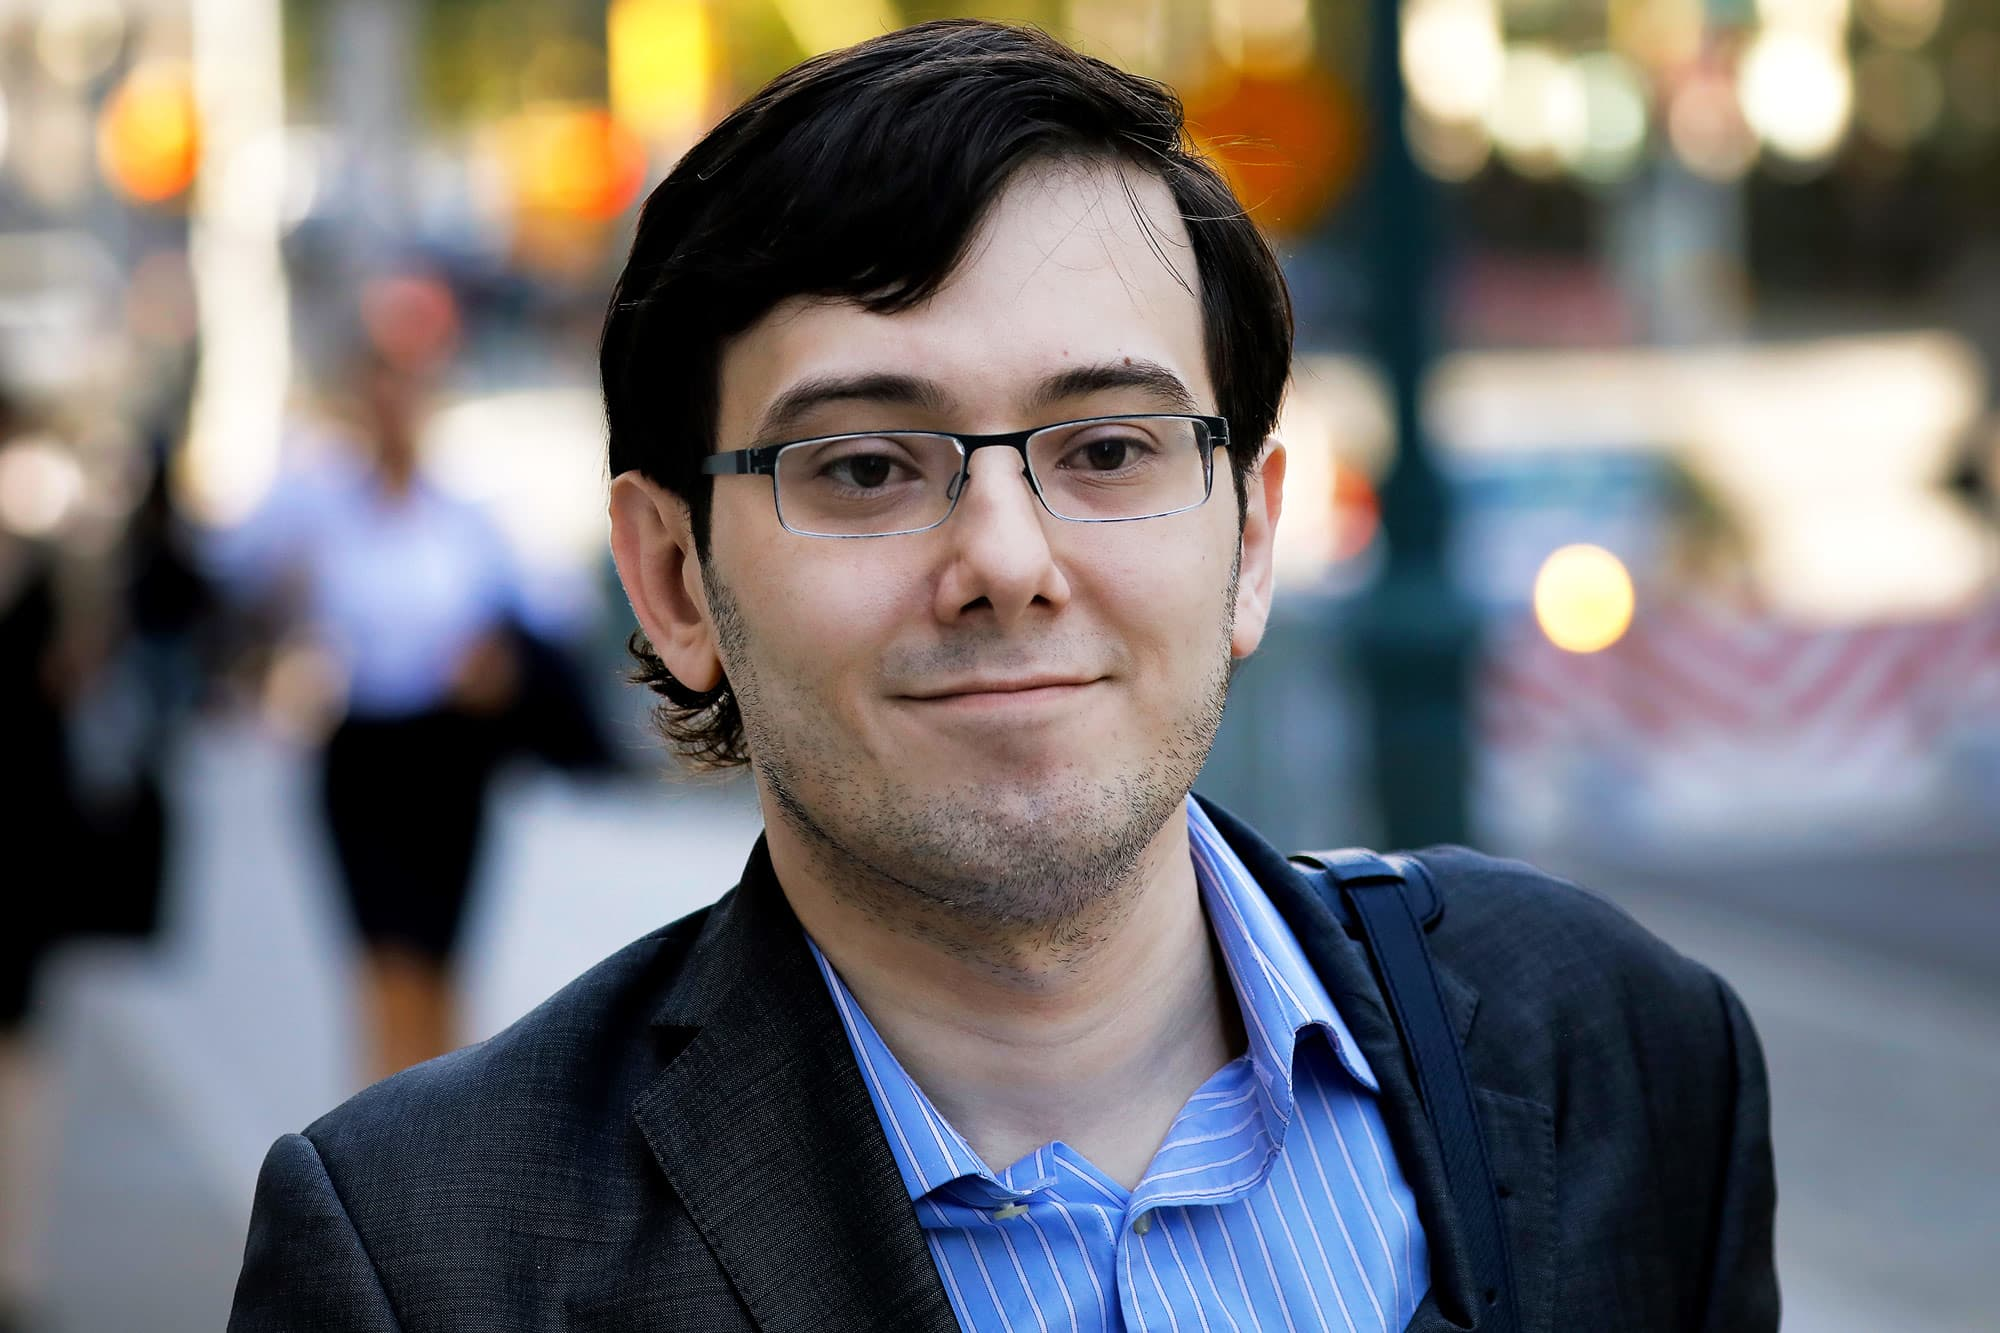 Retrophin paid pharma bro Martin Shkreli to settle legal claims — won't say how much